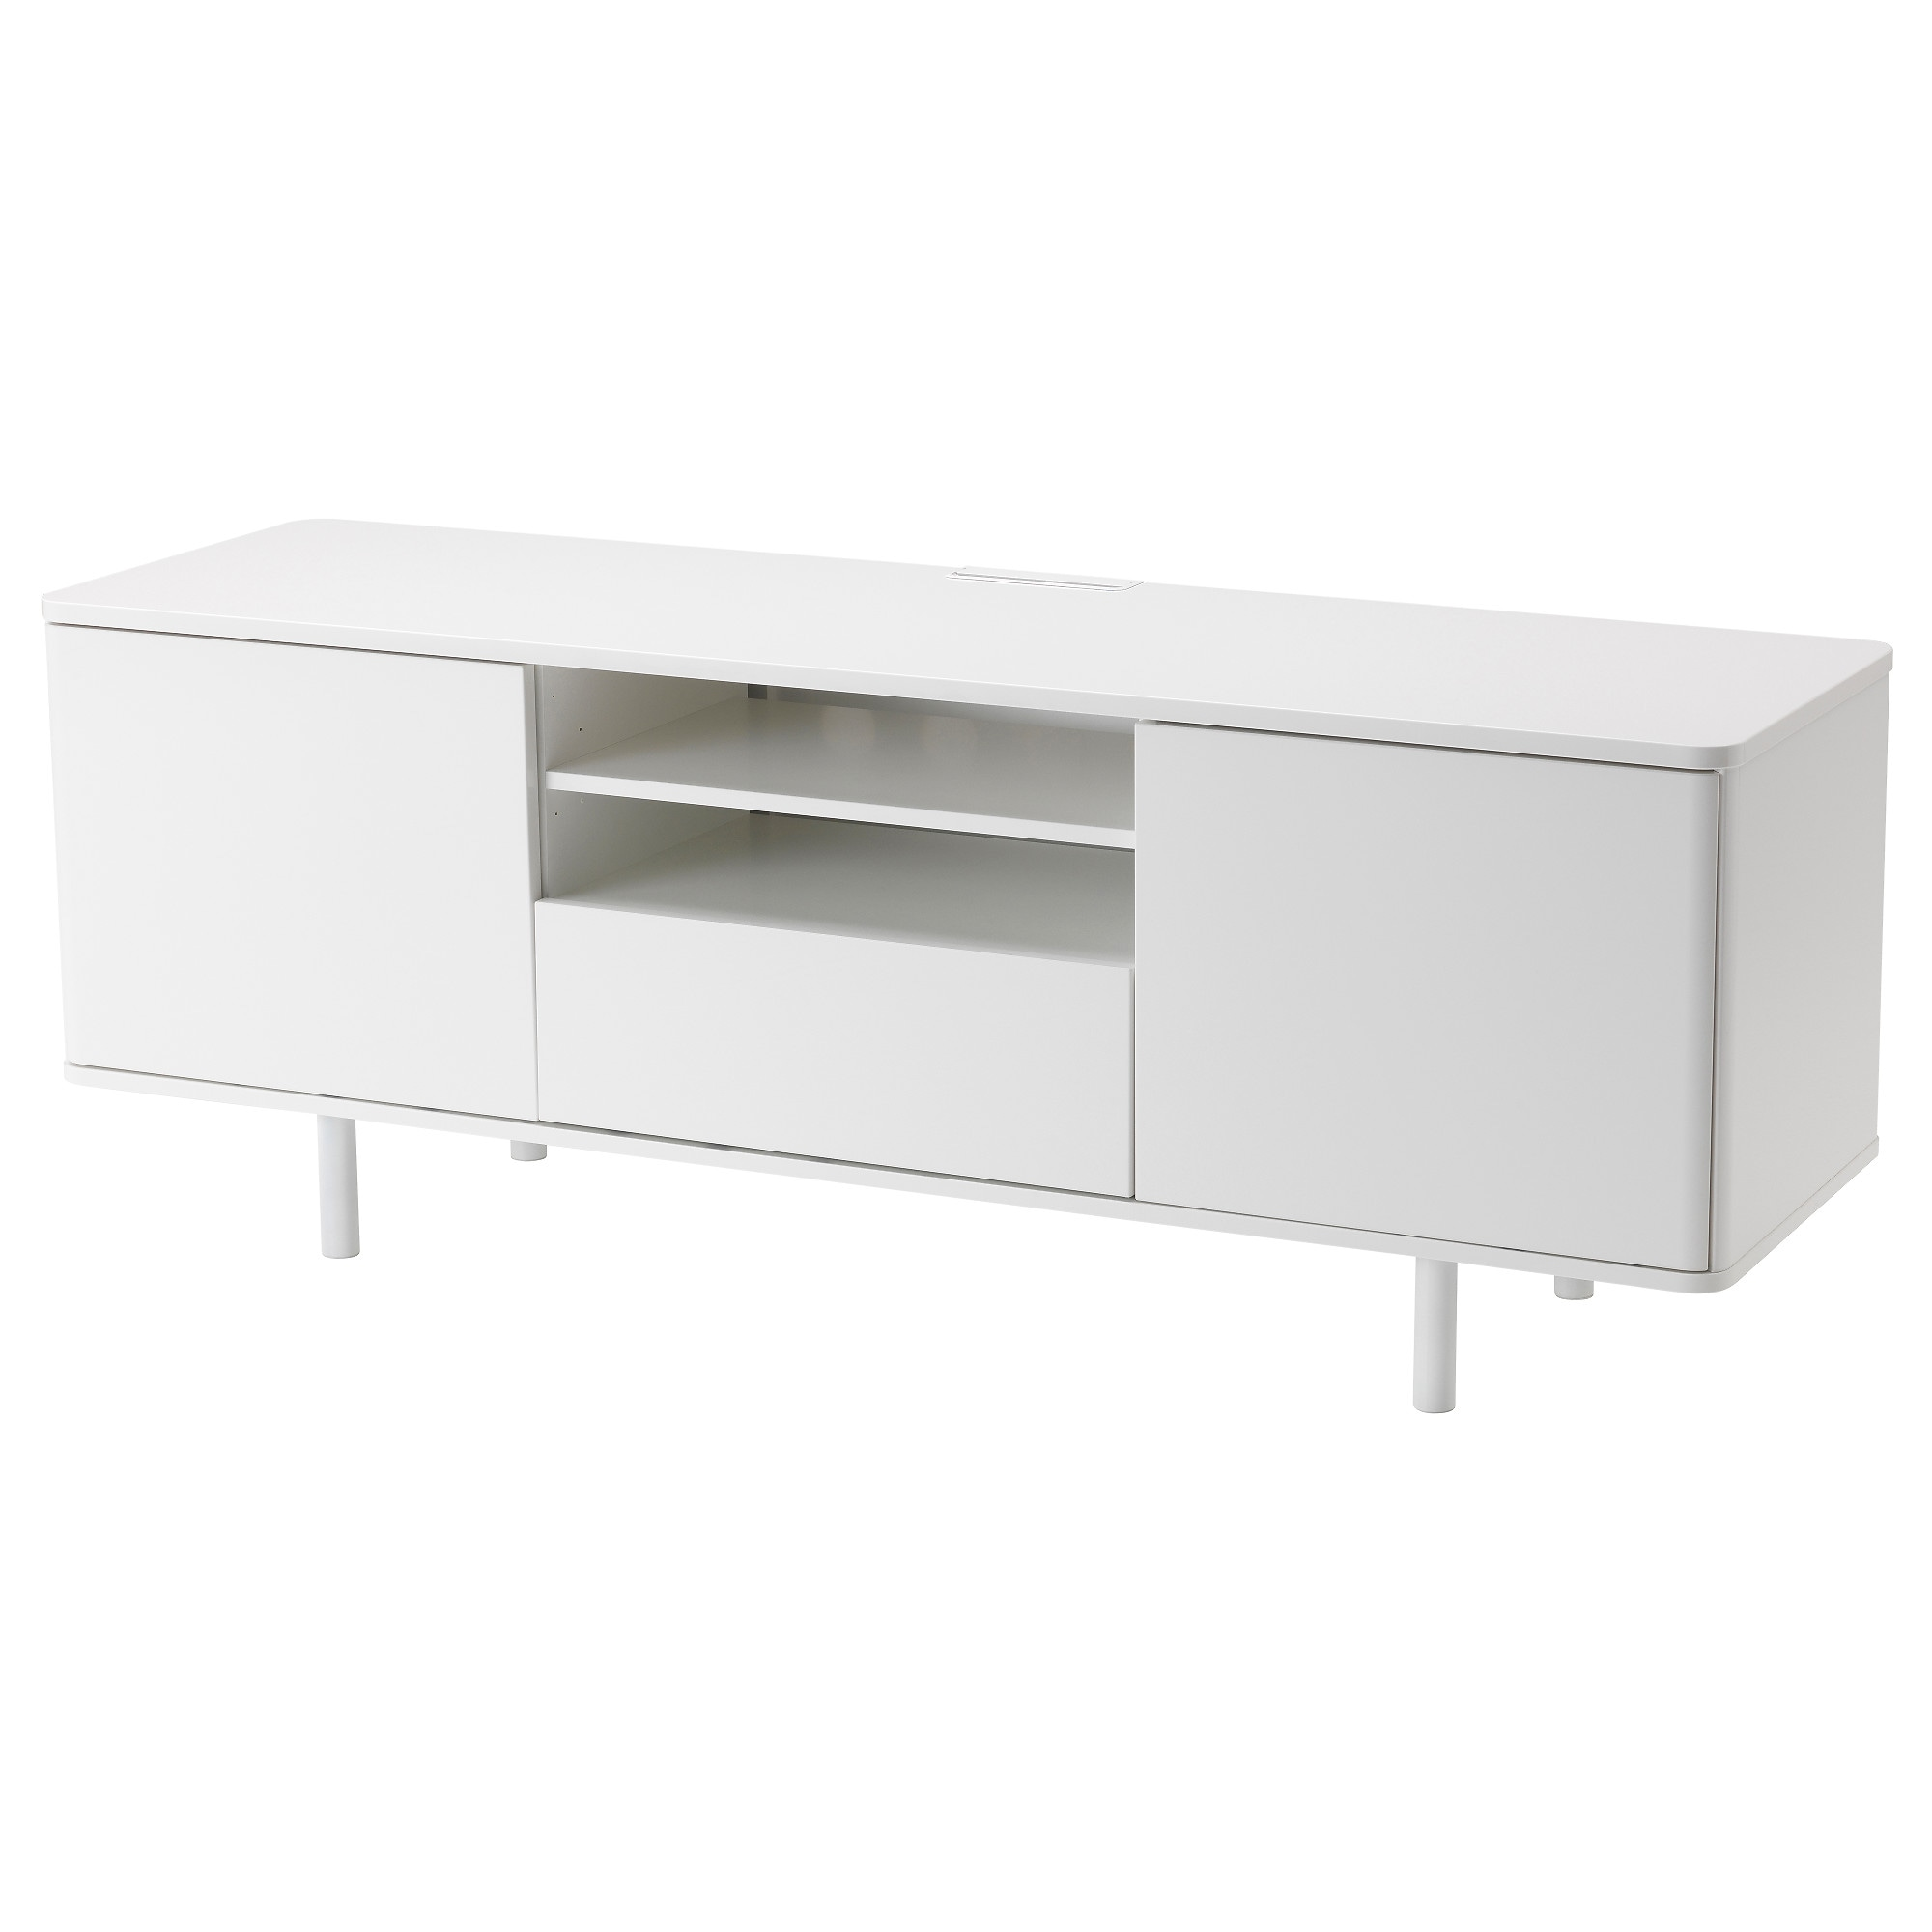 Plateau Rotatif Tv Ikea Excellent Attractive Plateau Tournant Tv  # Meuble Tv Avec Support Orientable